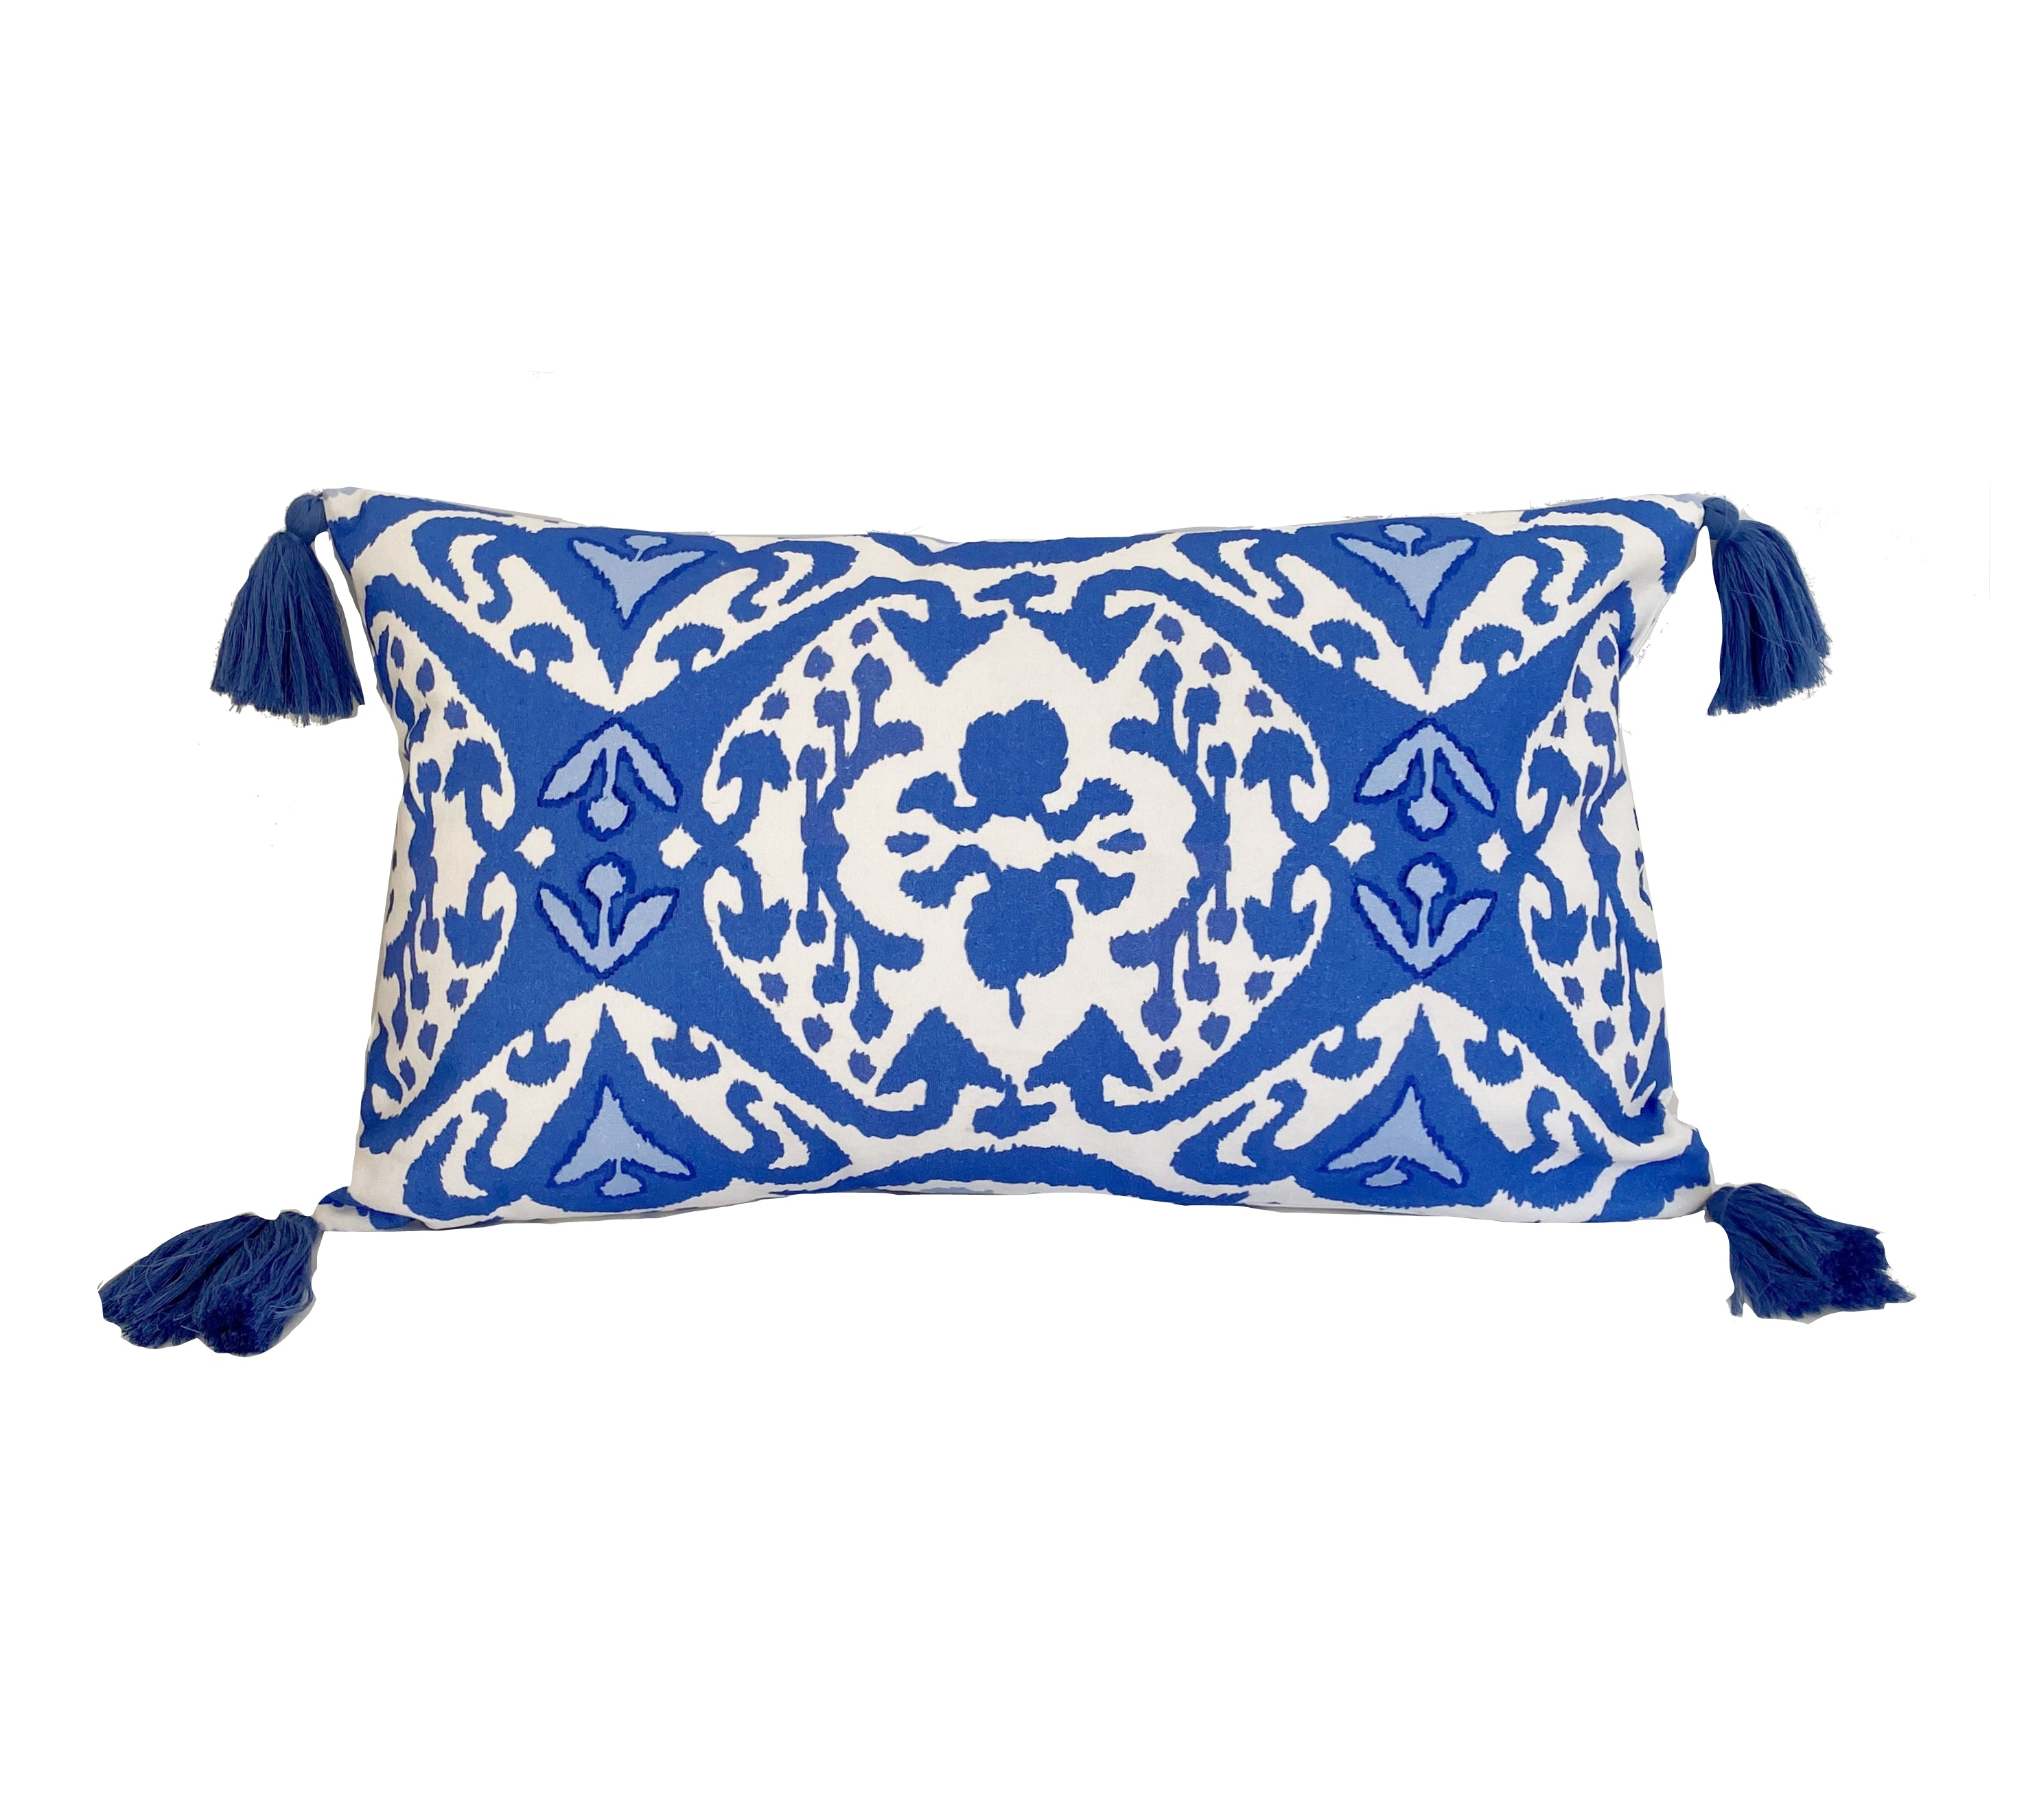 Dana Gibson Ikat in Blue Pillow with Tassels